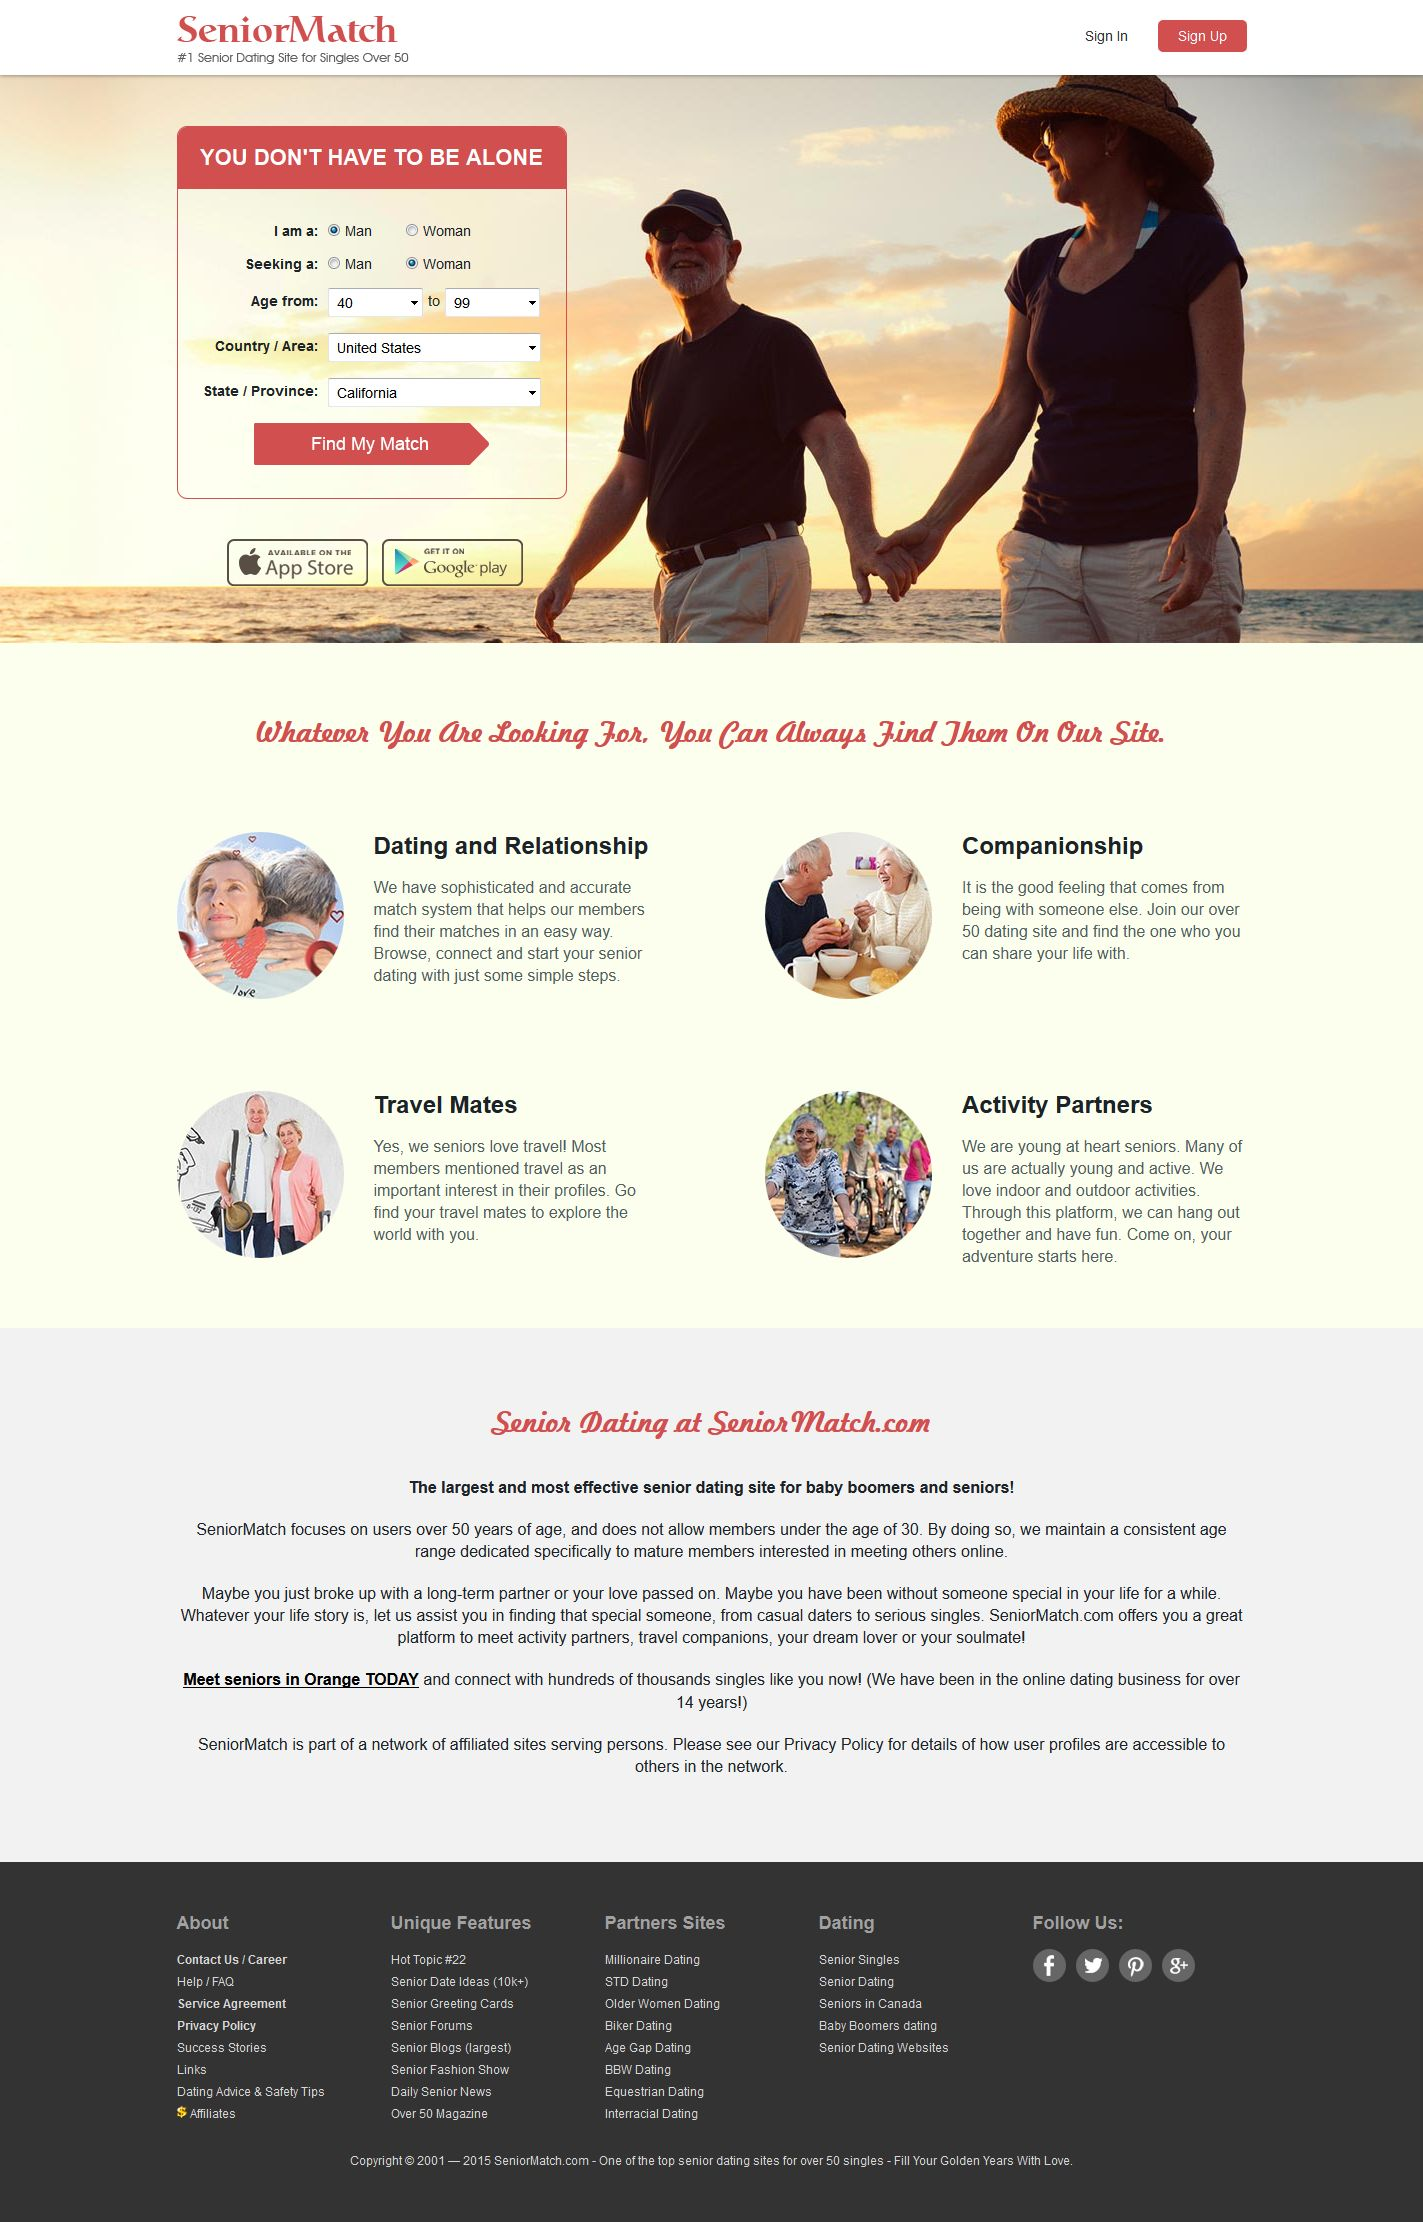 The Fastest Growing Free Senior Dating Site